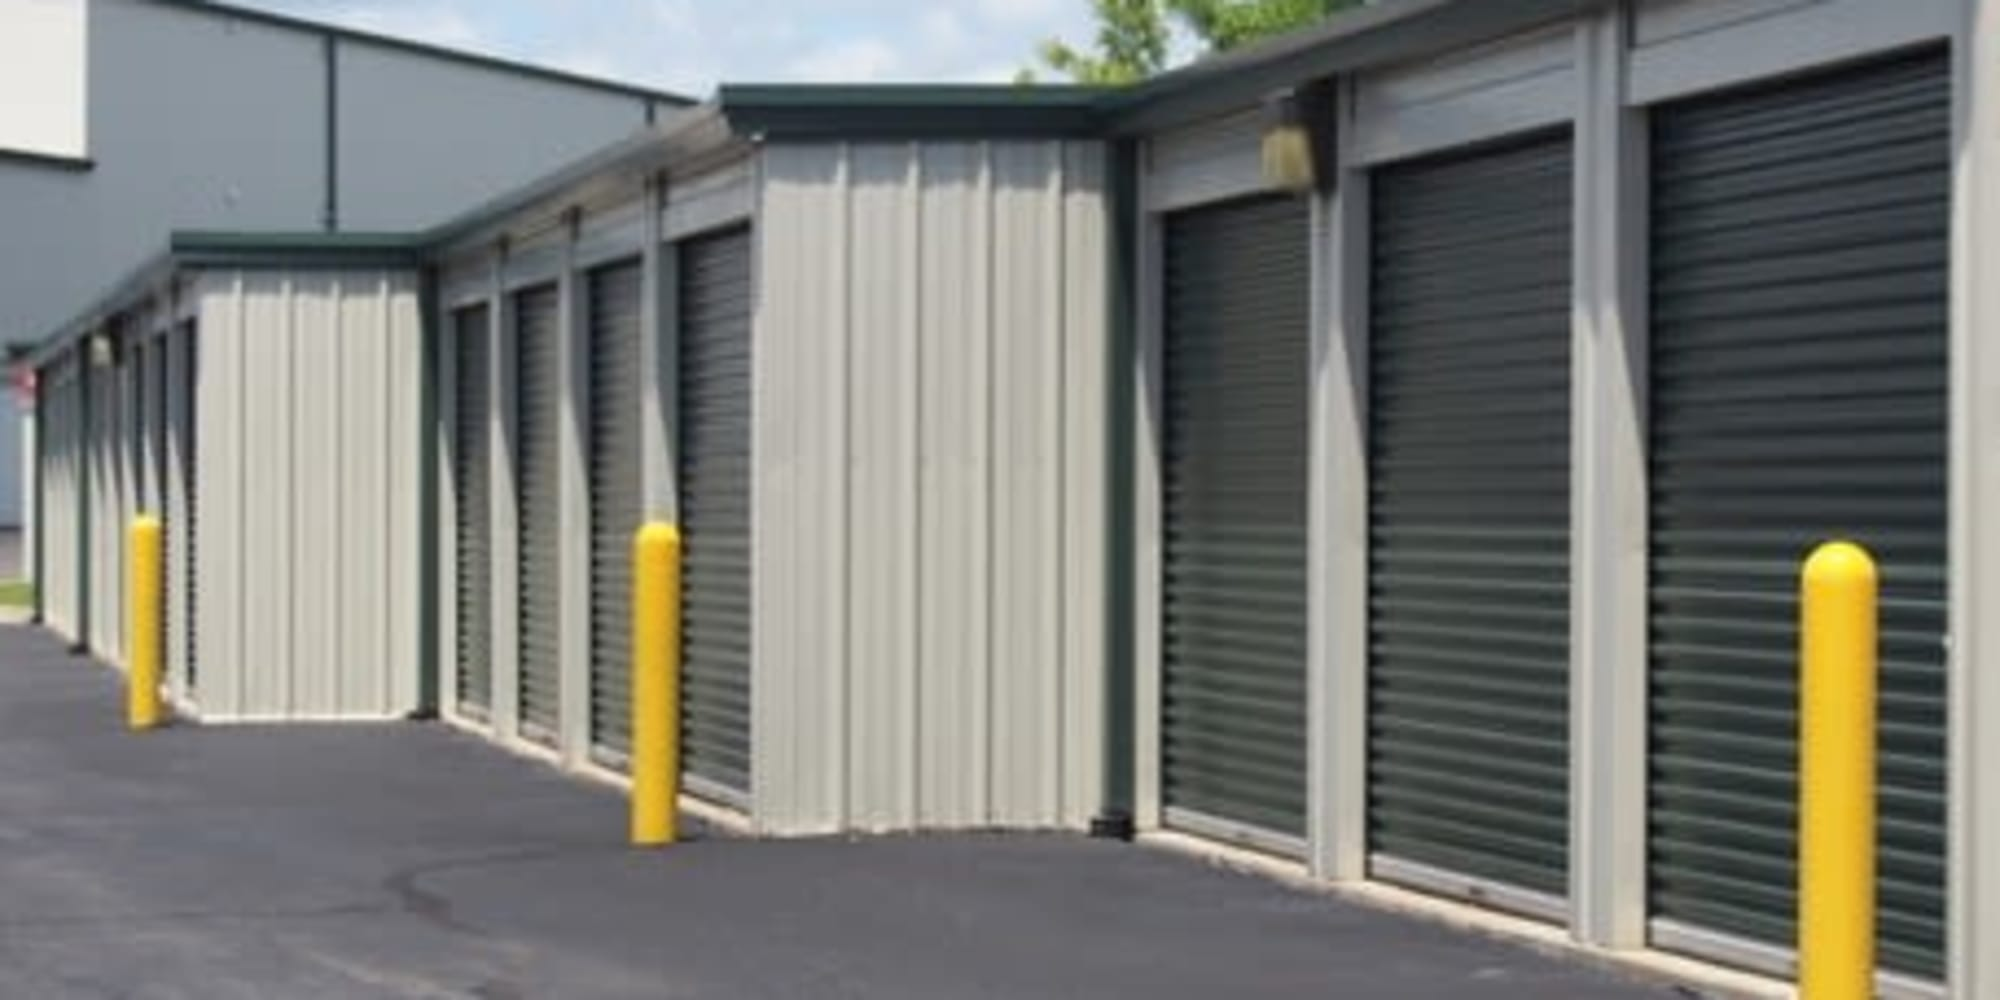 Unit sizes and prices at Michigan Storage Centers in Farmington Hills, Michigan